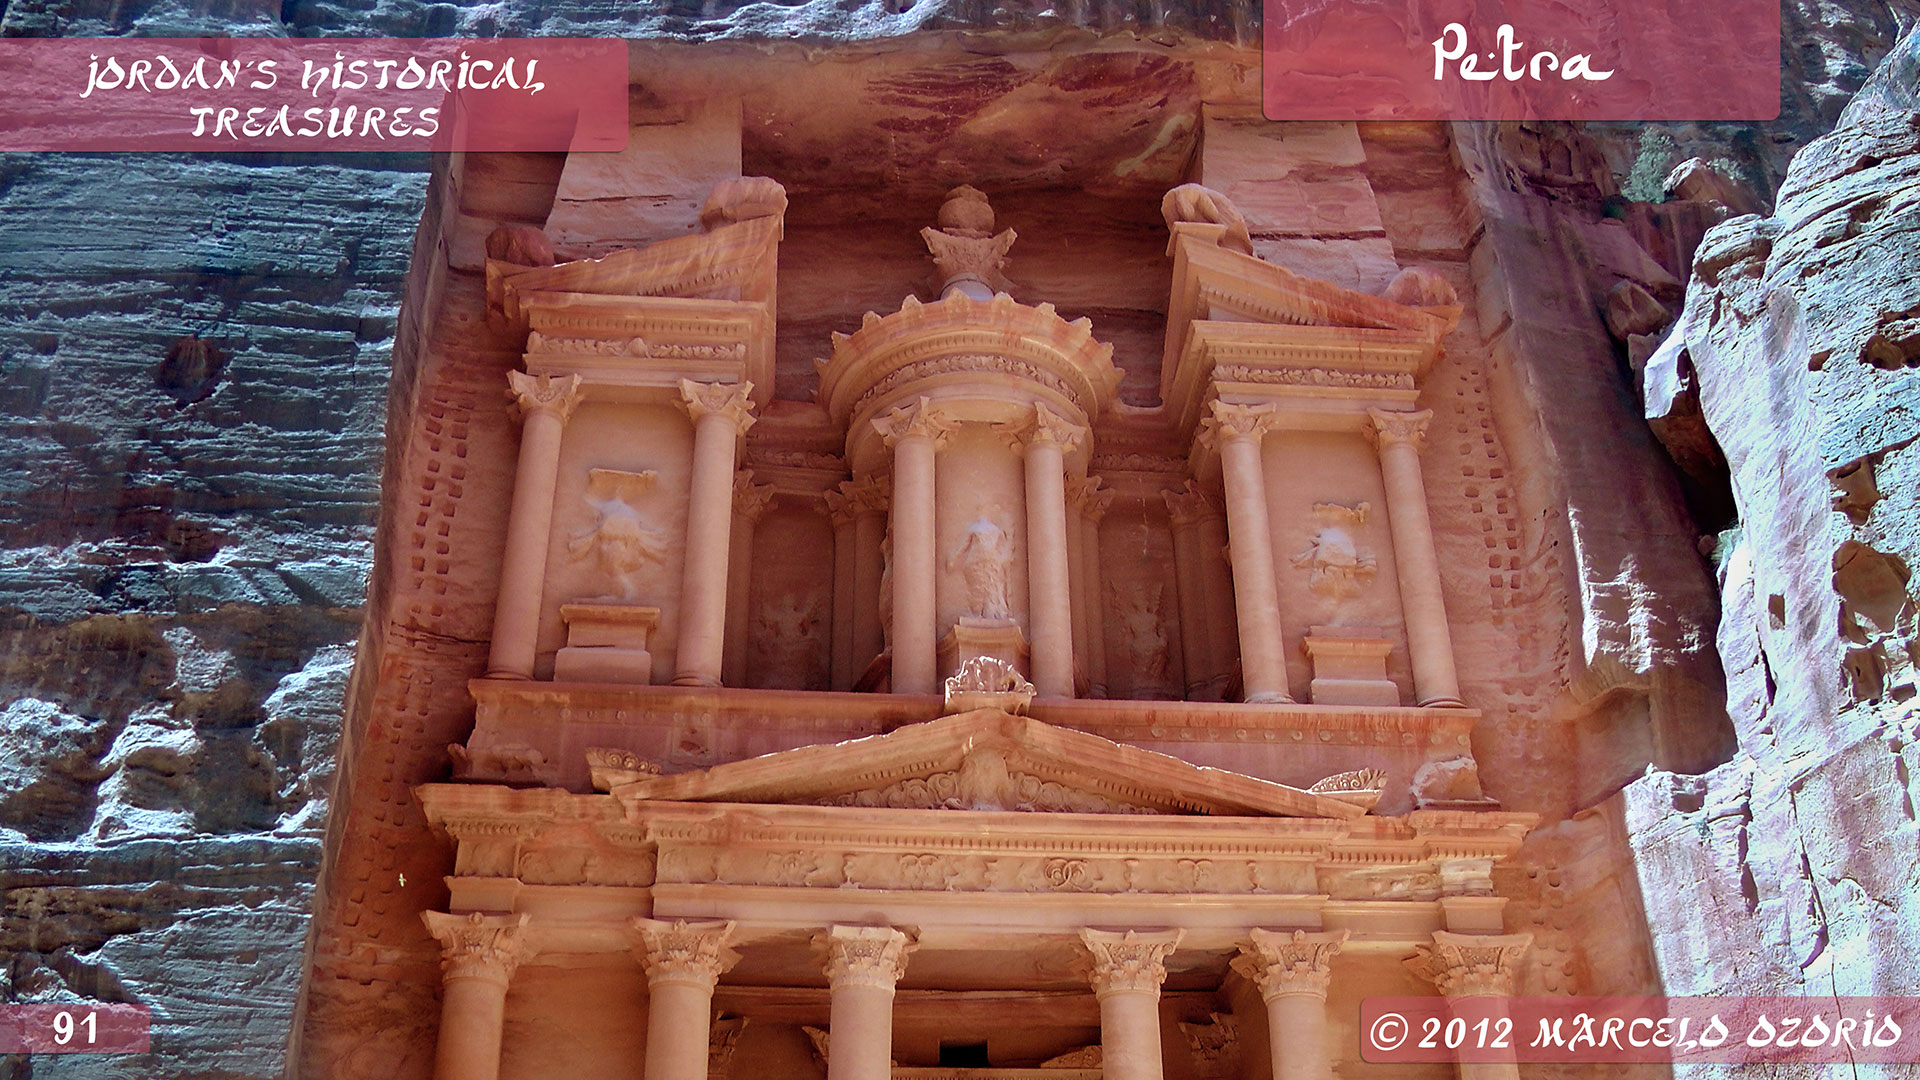 Petra Archaeological City Jordan 11 - The Astonishing Treasure at Petra - Jordan